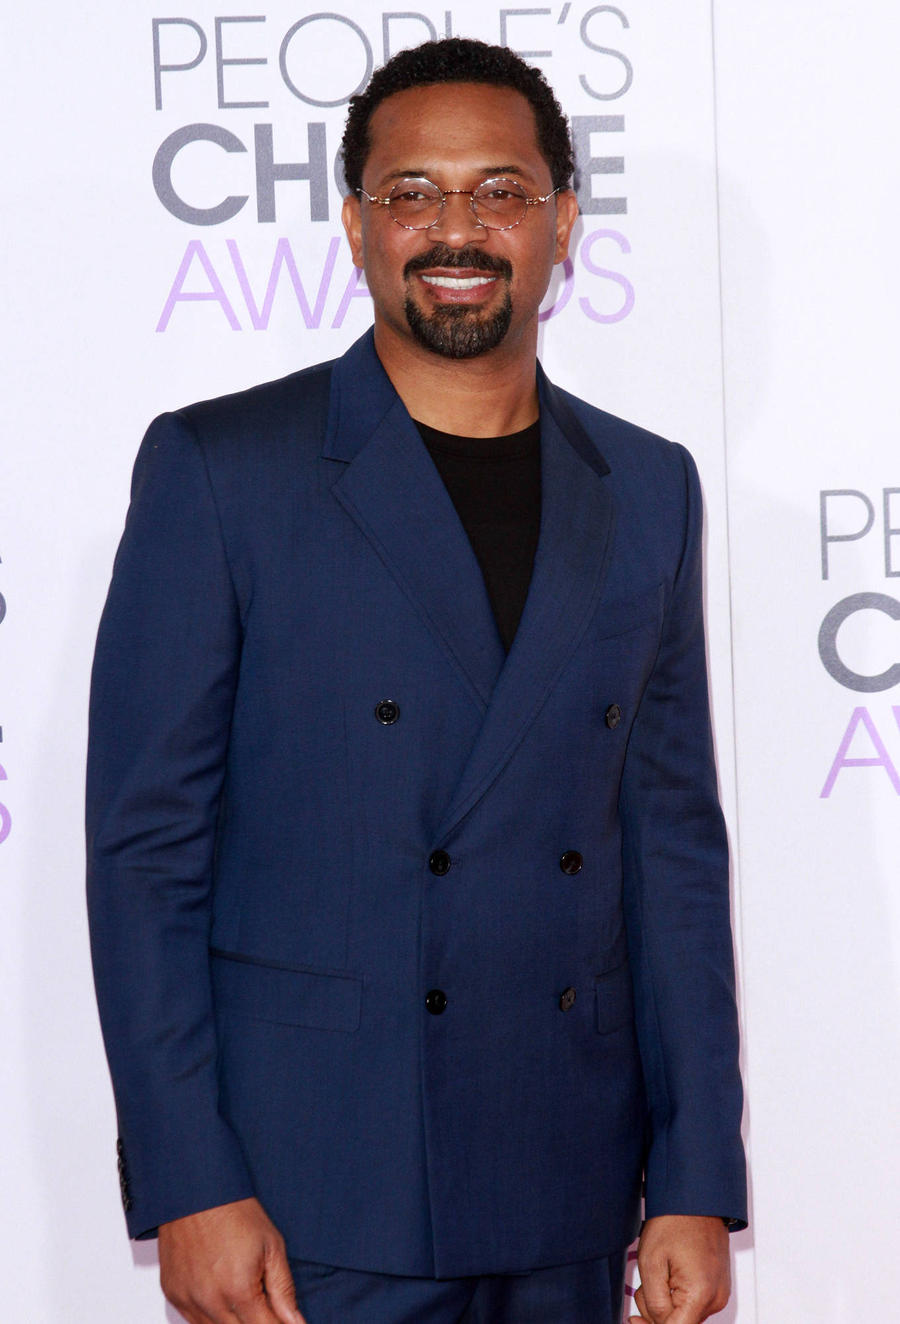 Mike Epps Defends Nina Co-star Over Casting Controversy